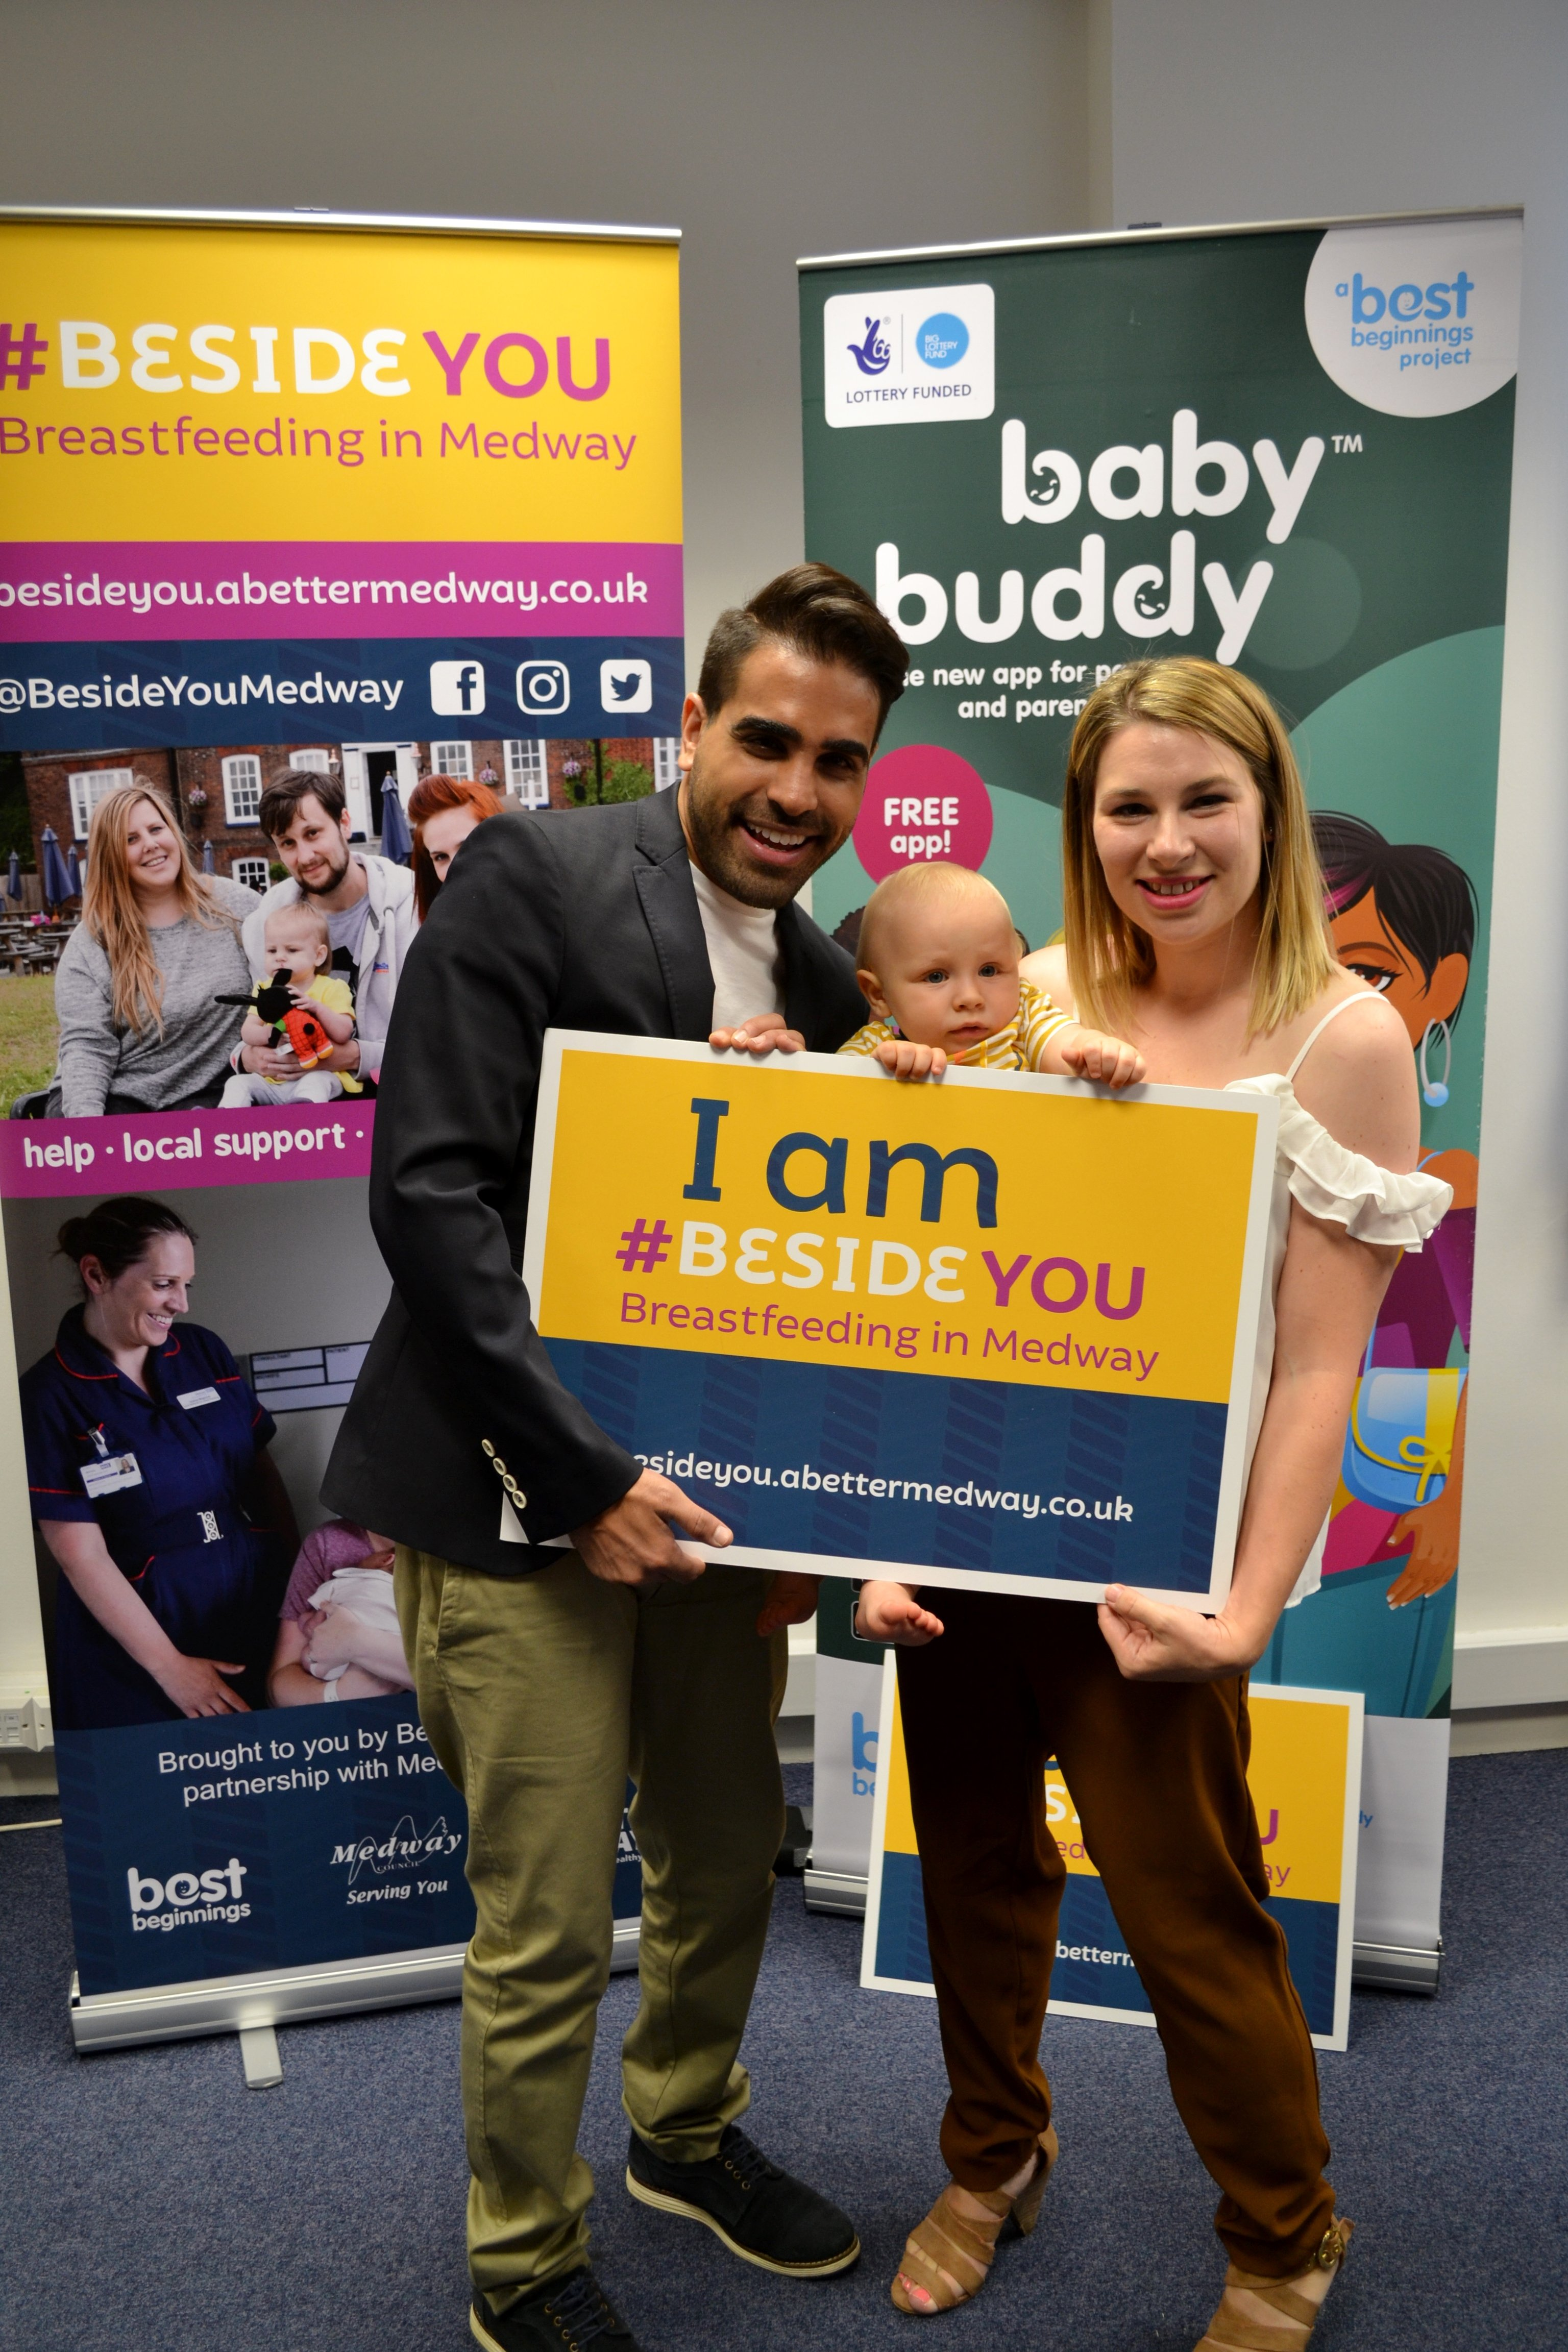 Dr Ranj, #BesideYou, Breastfeeding in Medway